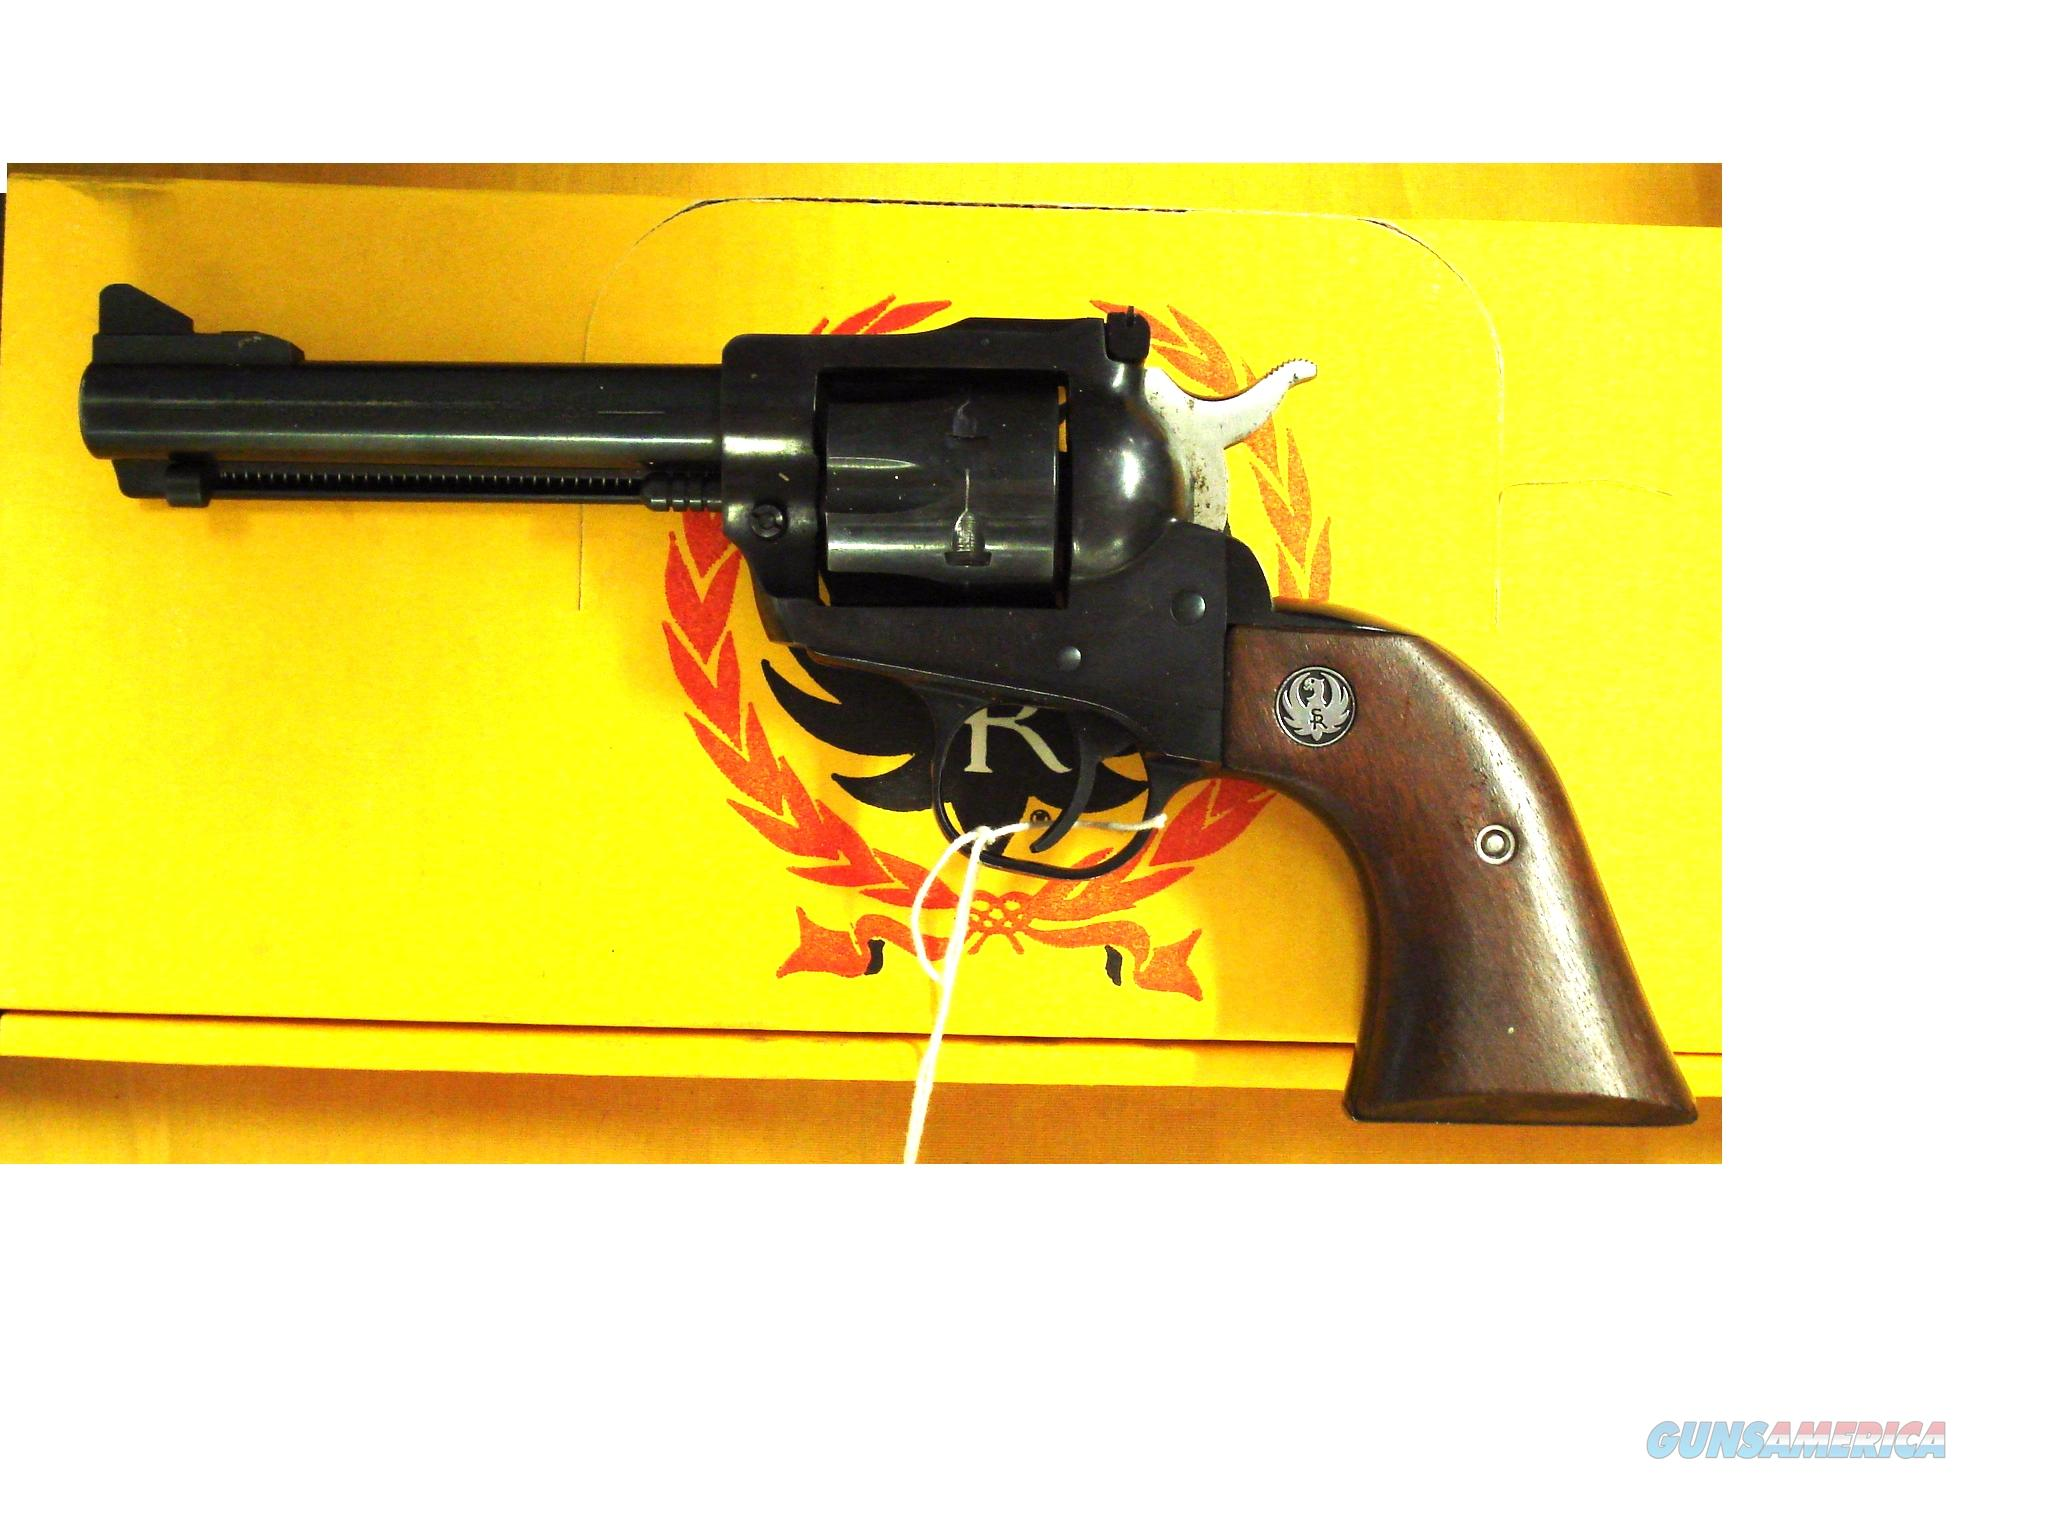 "RUGER NM SINGLE SIX .32 H&R MAG. 4 1/2"" BBL (114)  Guns > Pistols > Ruger Single Action Revolvers > Single Six Type"